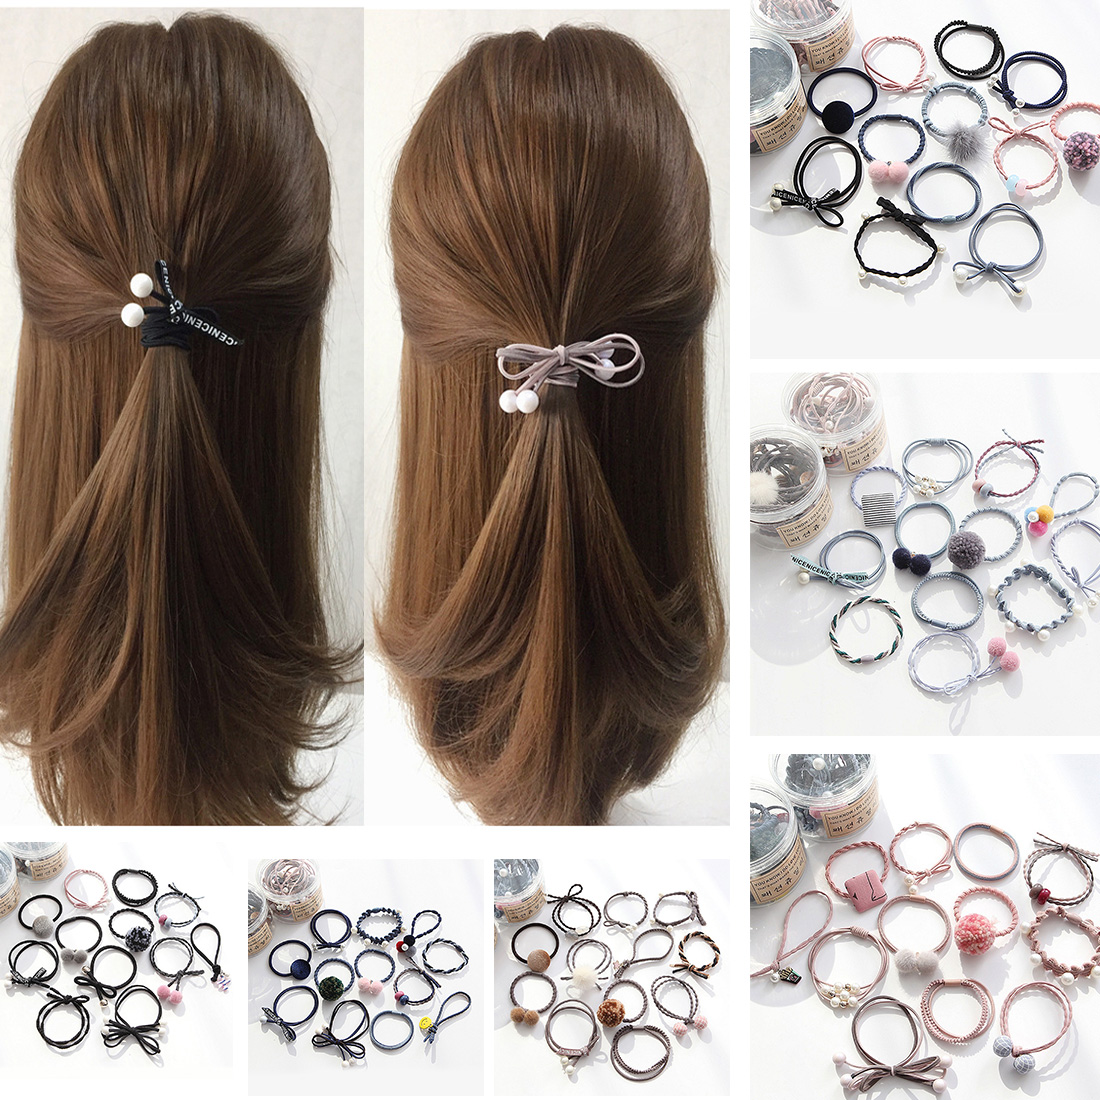 12pcs/lot Girls Hair Band Hairball Cute Pearl Bow Elastic Rubber Bands Hair Ropes Ponytail Holder Tie Gum Hair Accessories new 10pcs women lady hair band velvet elastic ponytail tie bow rubber bobbles lovely